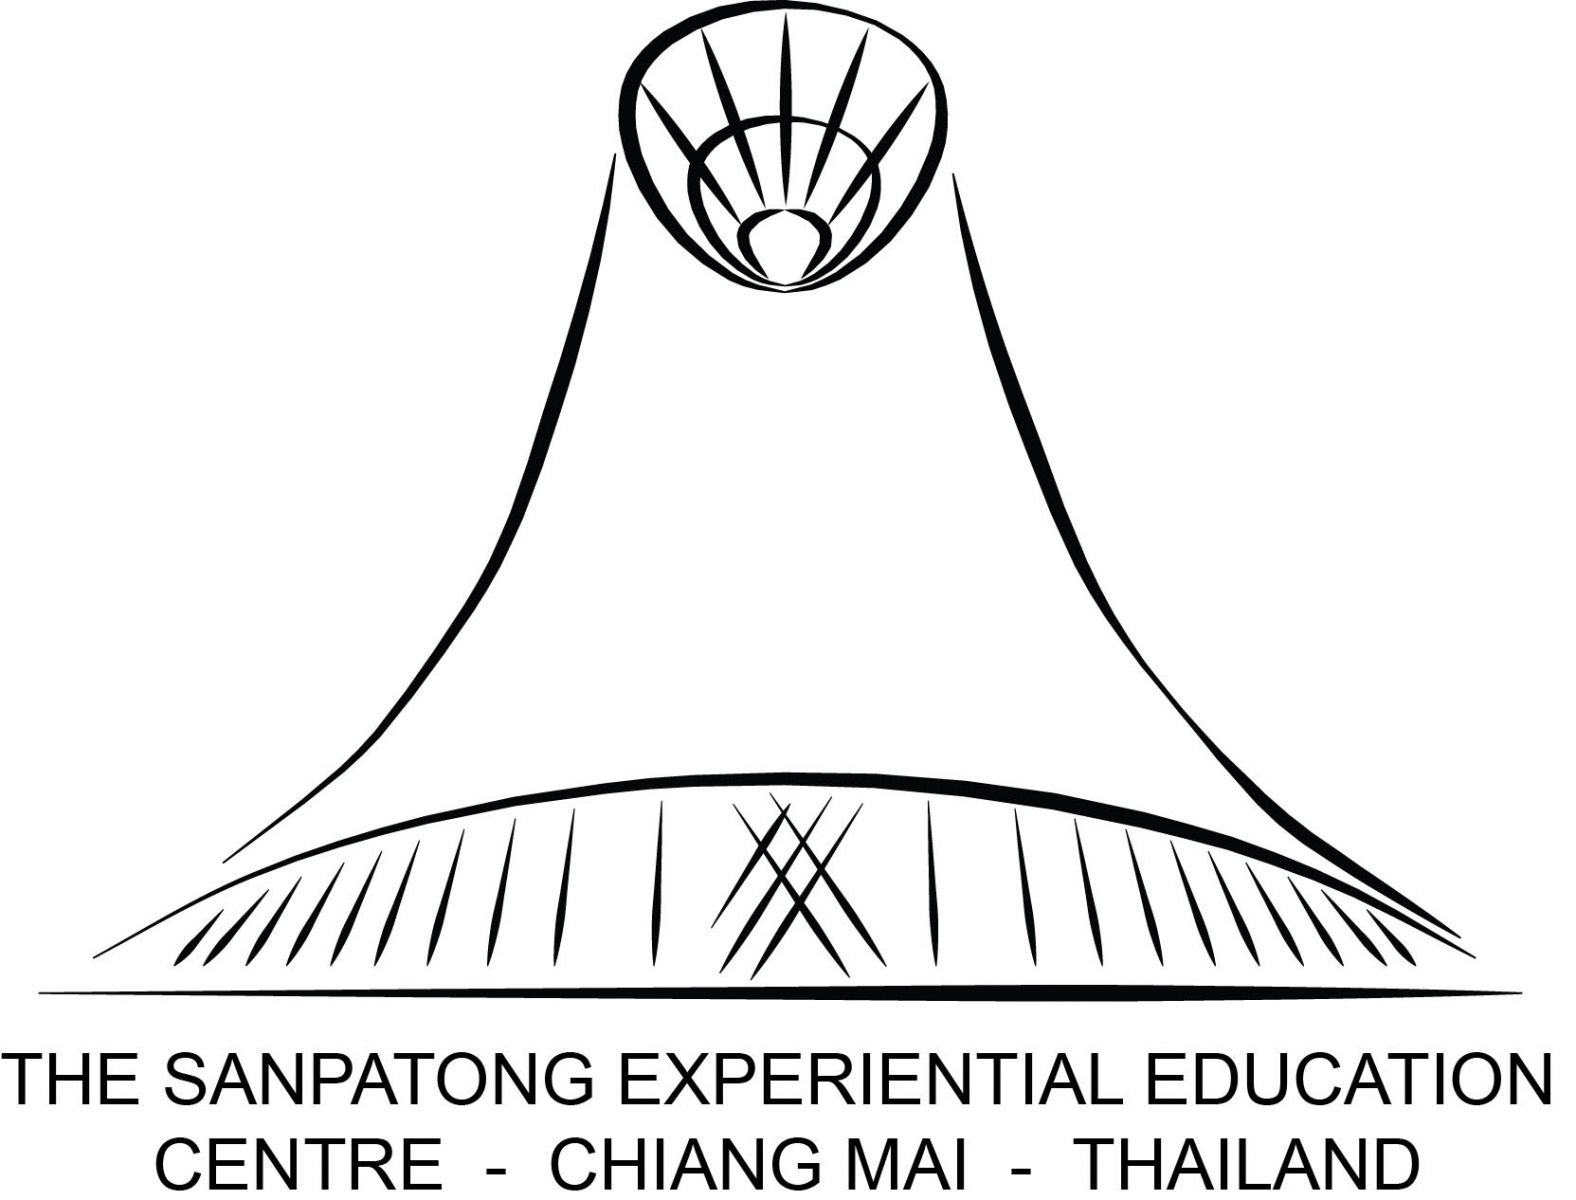 The Sanpatong Experiential Education Centre